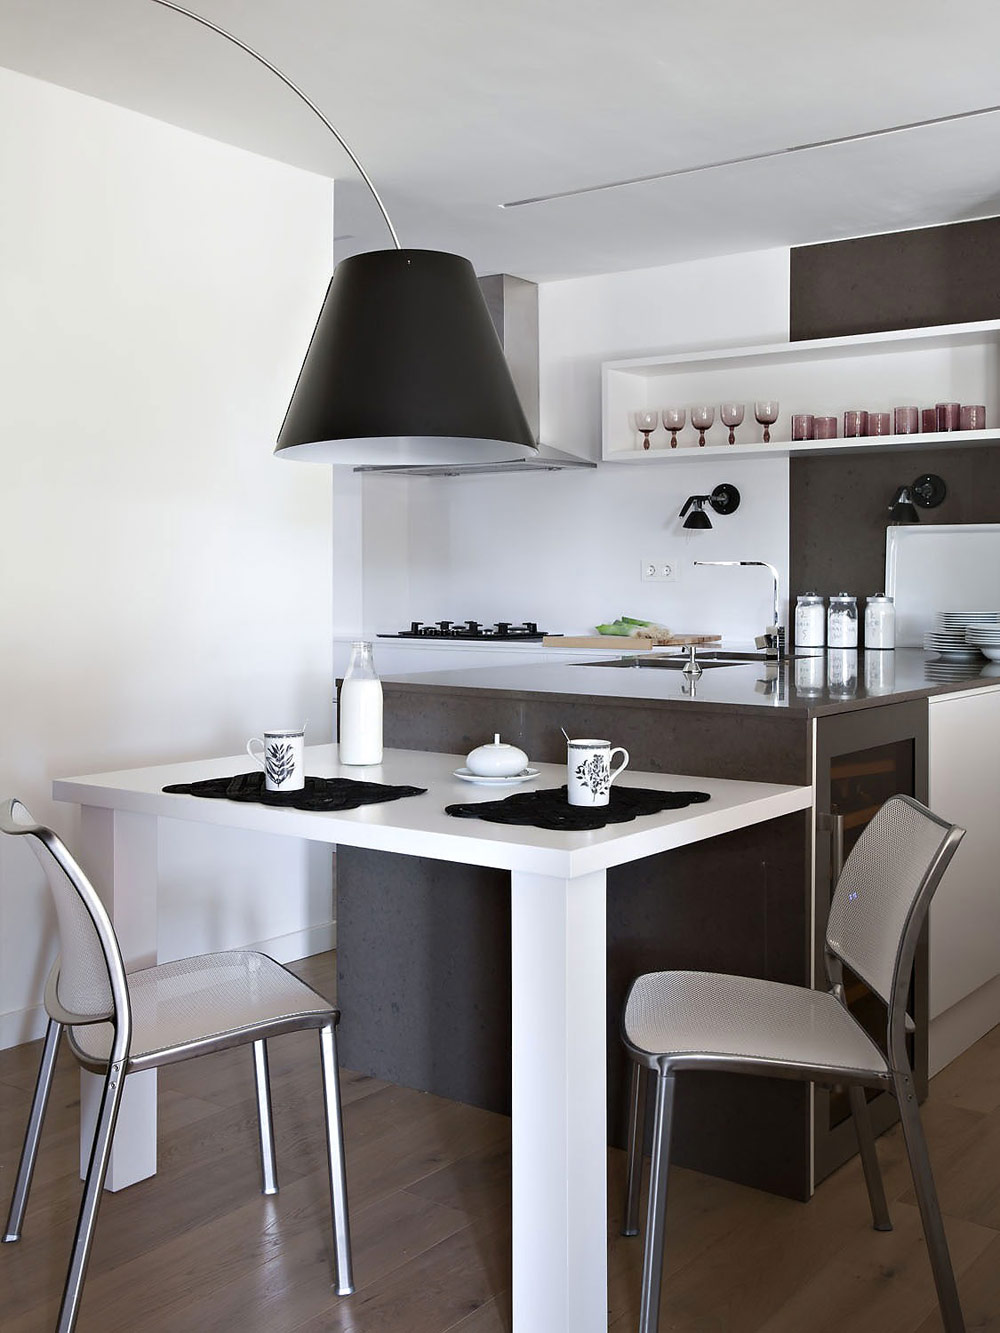 Kitchen & Breakfast, Vivienda en Llaveneres by Susanna Cots